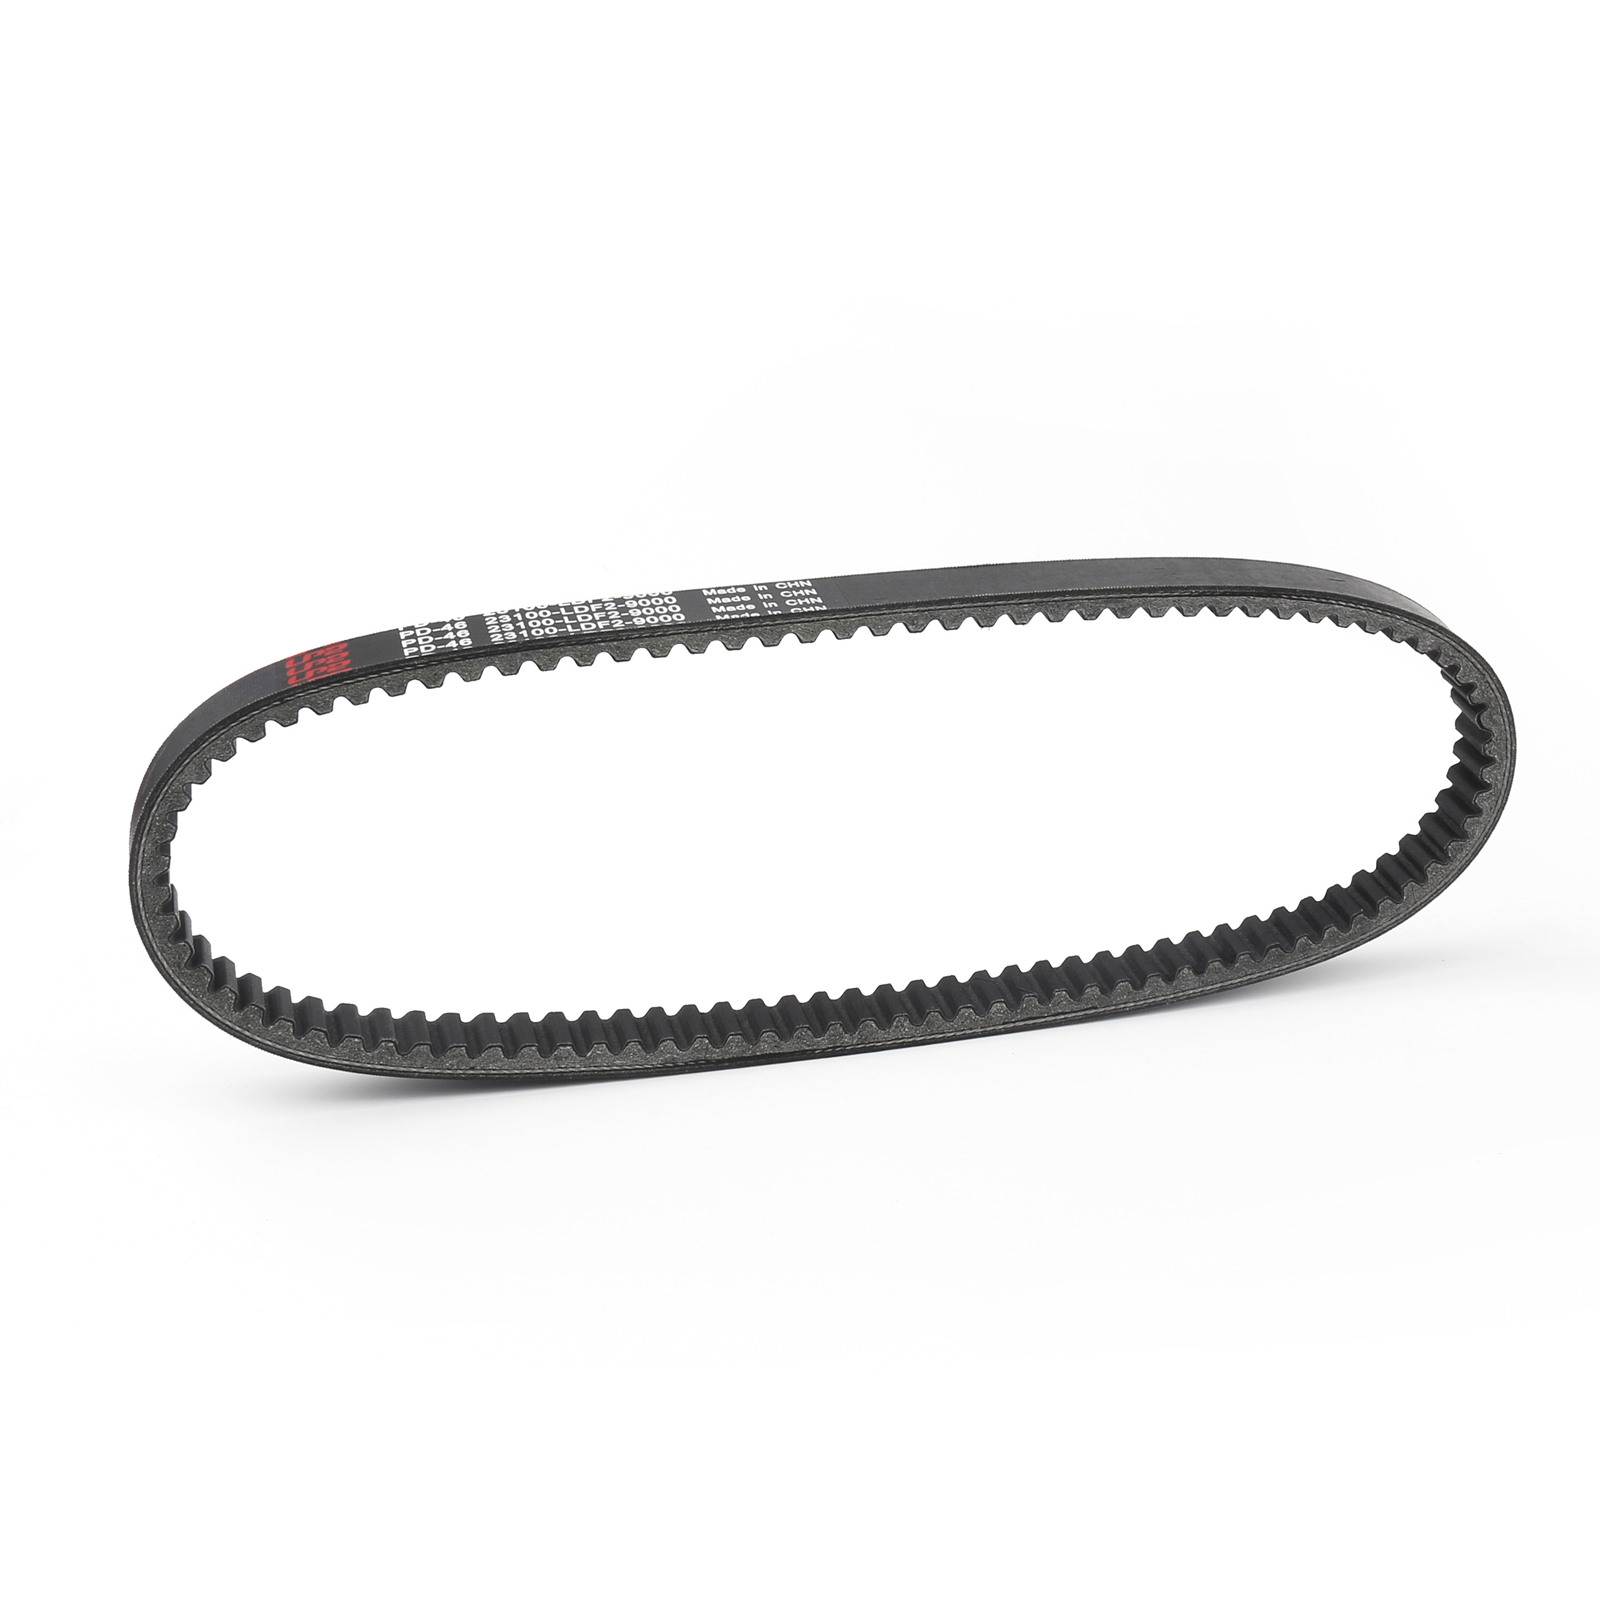 Drive Belt 23100-LDF2-900 For Kymco 200 250 300 People S